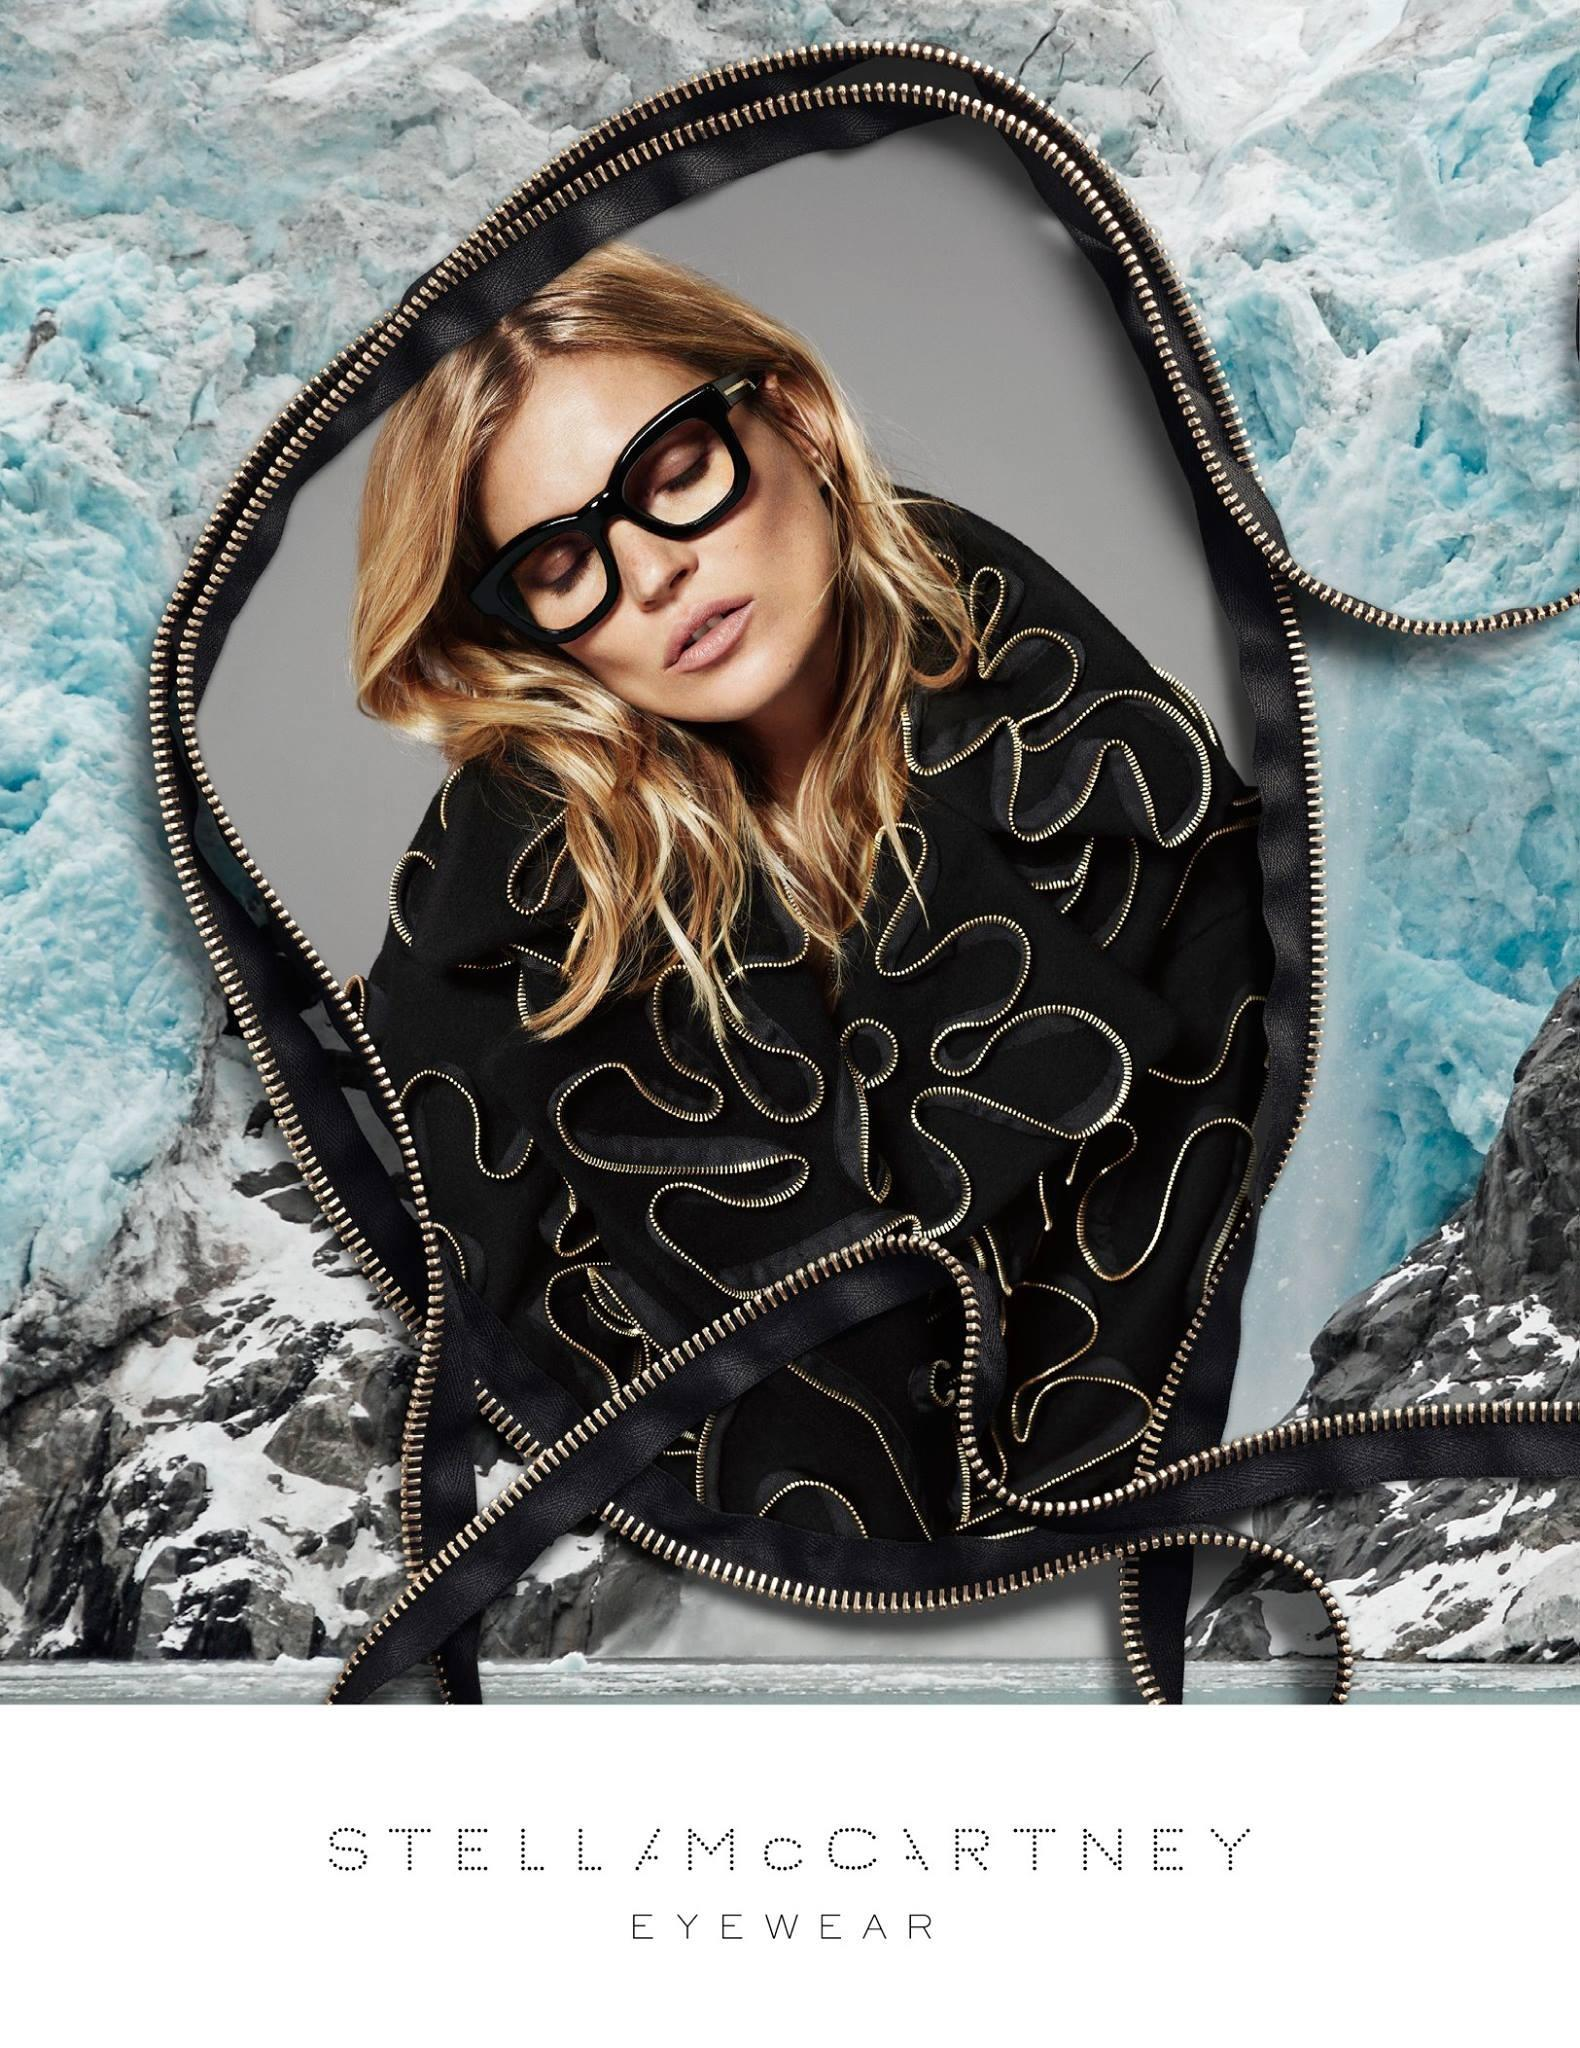 Our #Winter14 #StellaEyewear showcased against a backdrop of glaciers & stone, by #MertandMarcus featuring #KateMoss http://t.co/94msXuZKAO